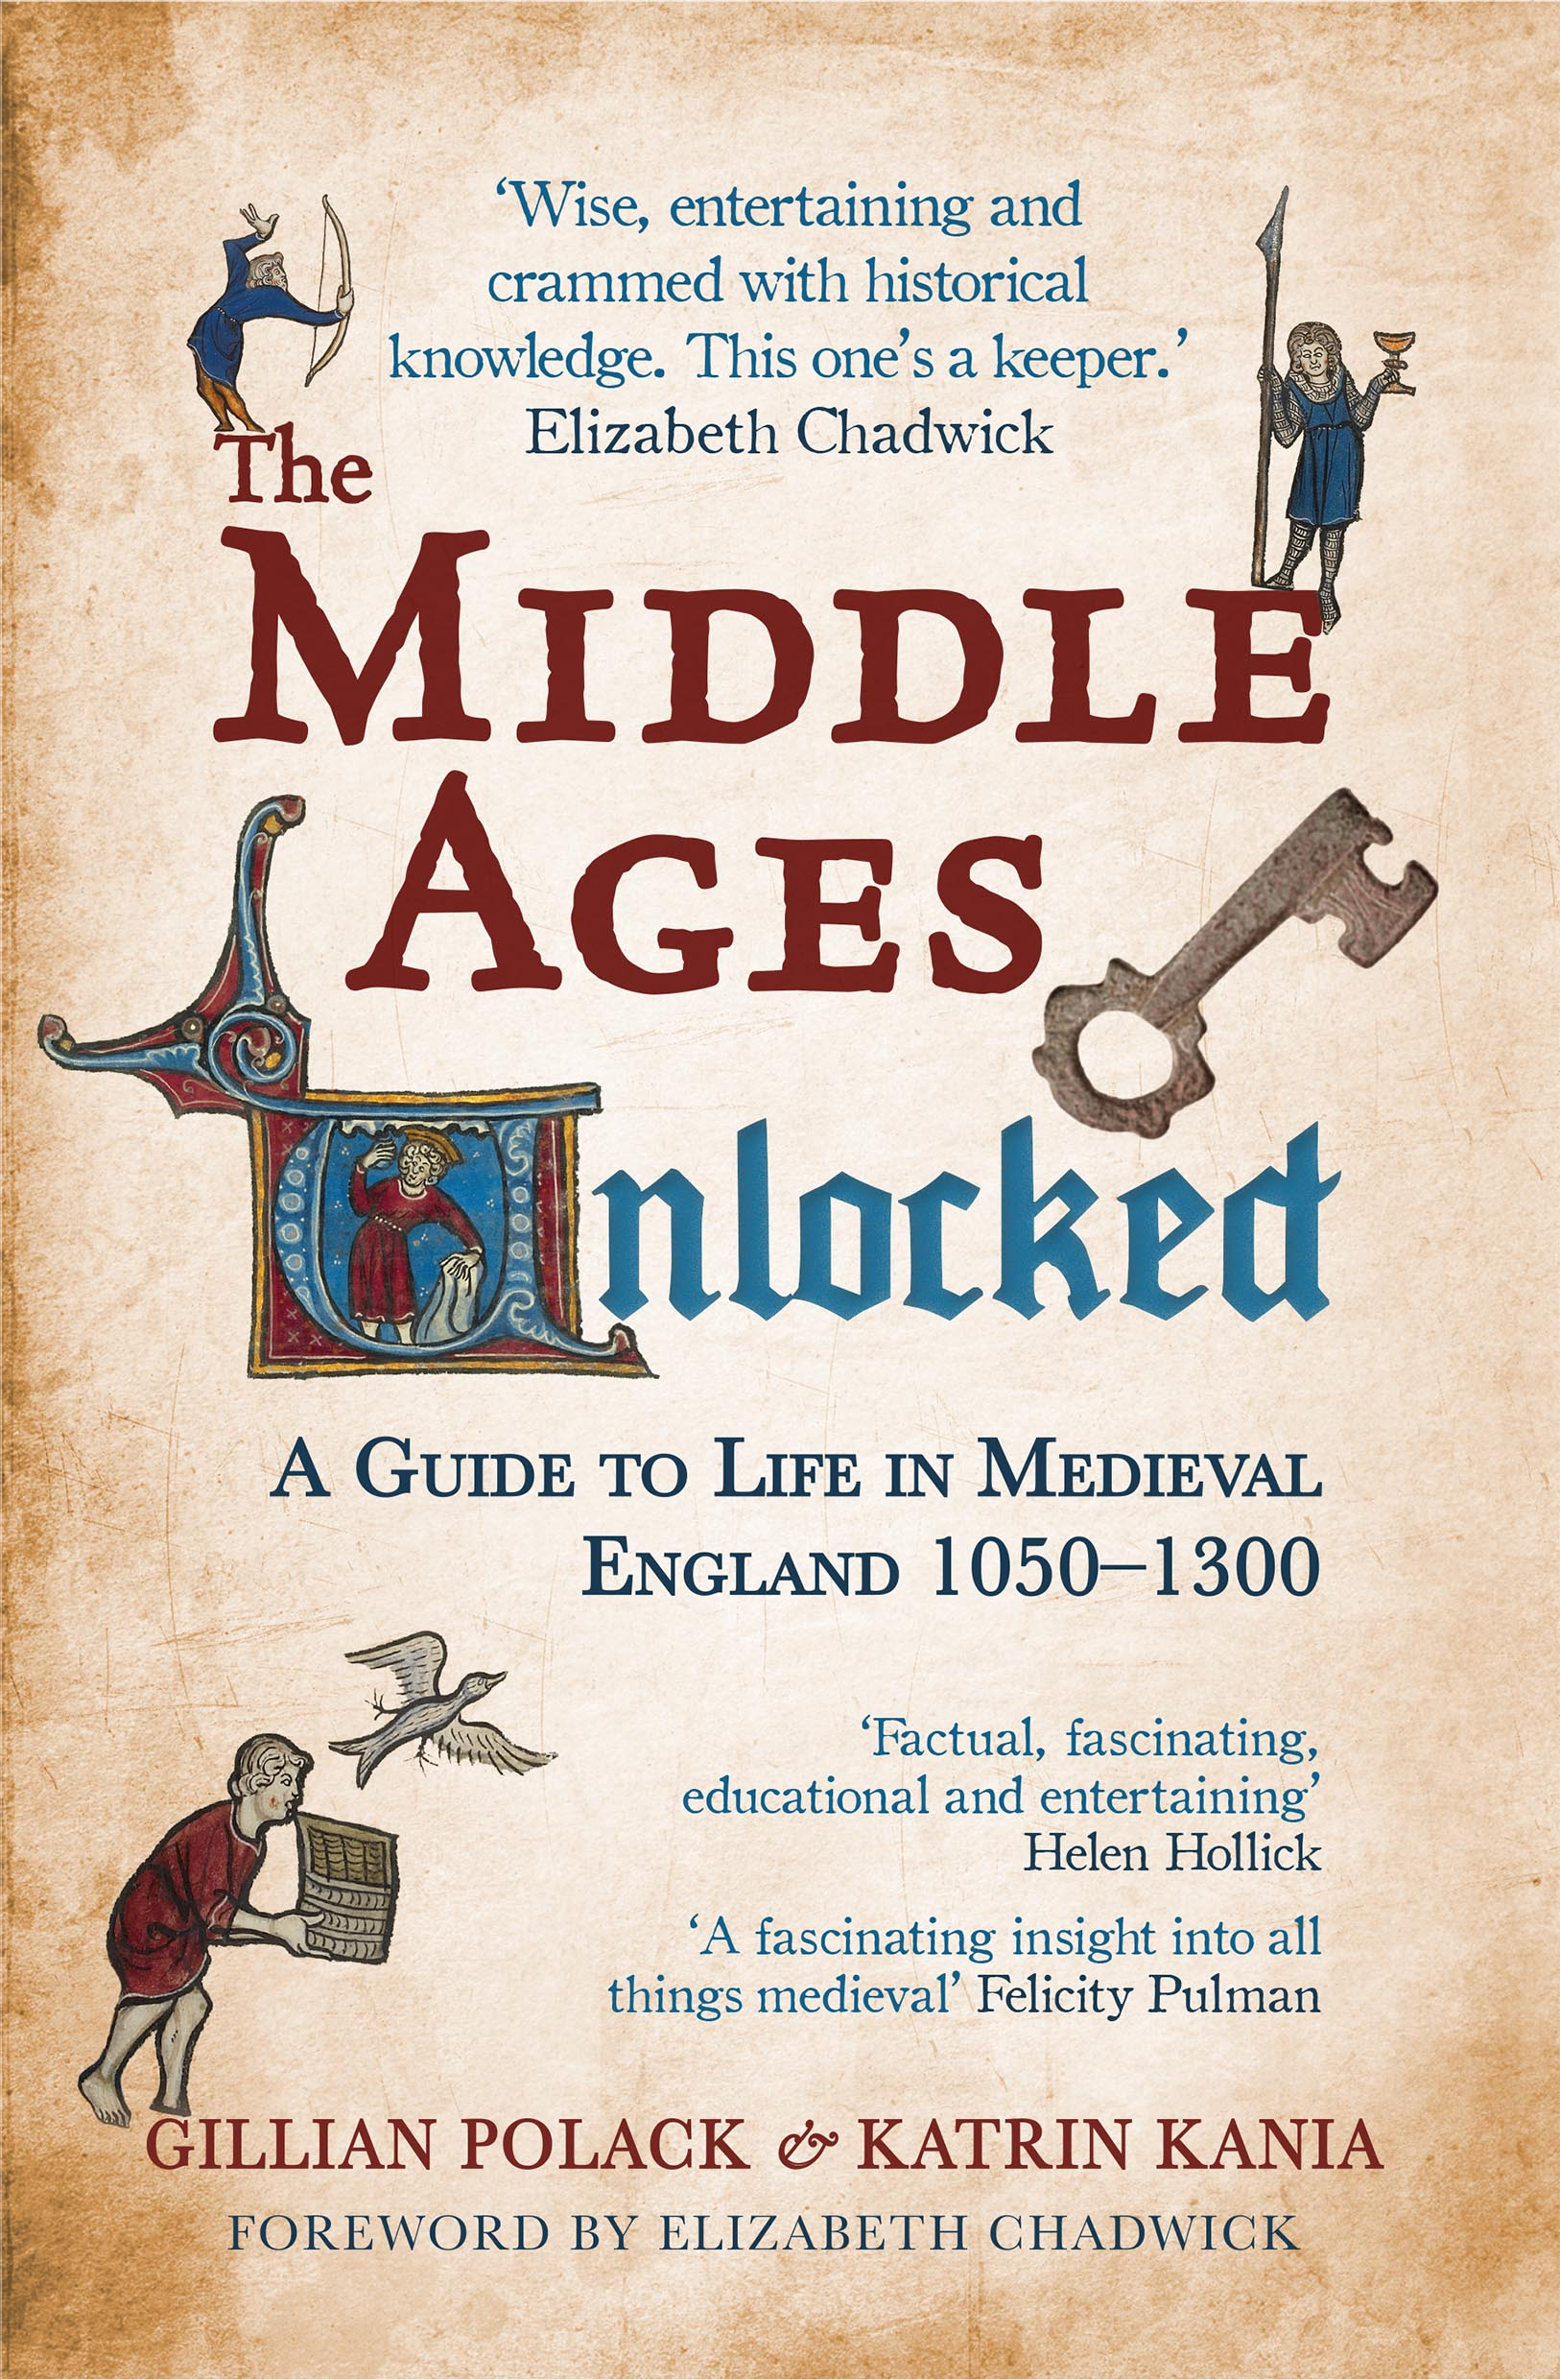 The Middle Ages Unlocked Author Interview